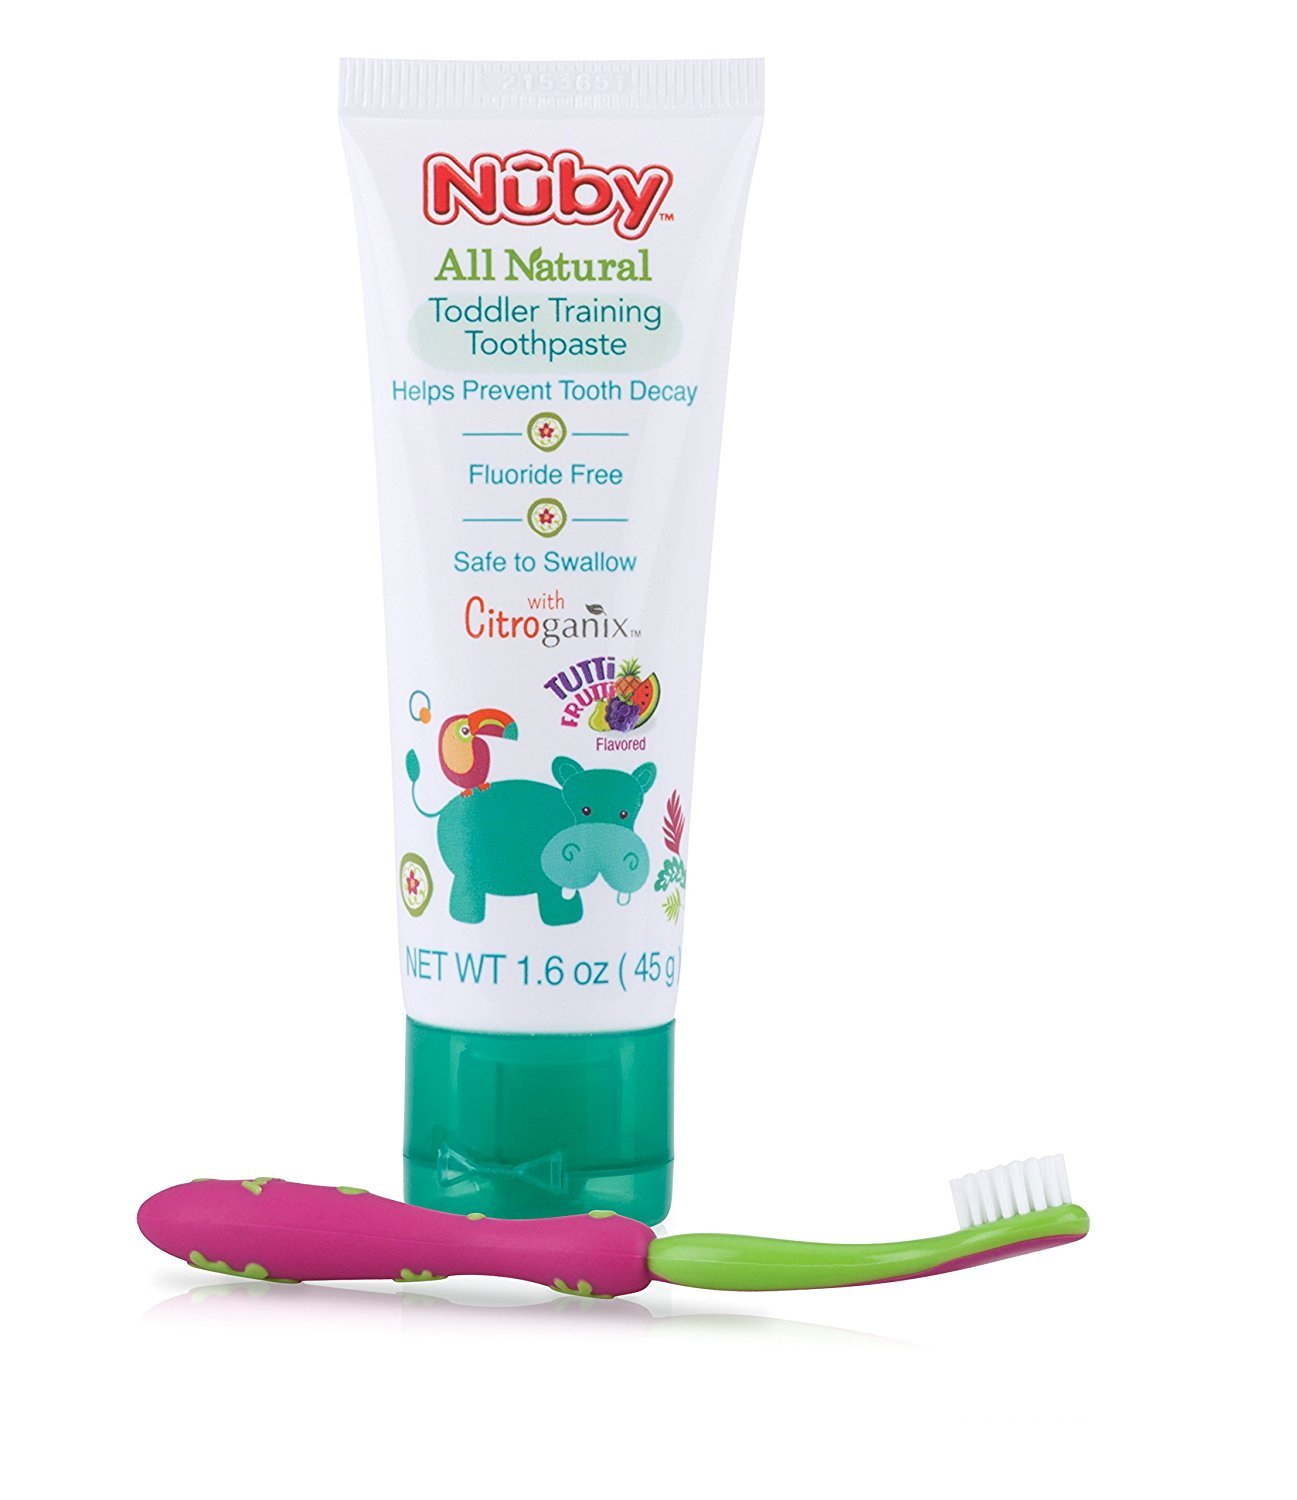 Nuby All Natural Toddler Toothpaste with Citroganix with Toothbrush, Blue/Green Nuby US 68046